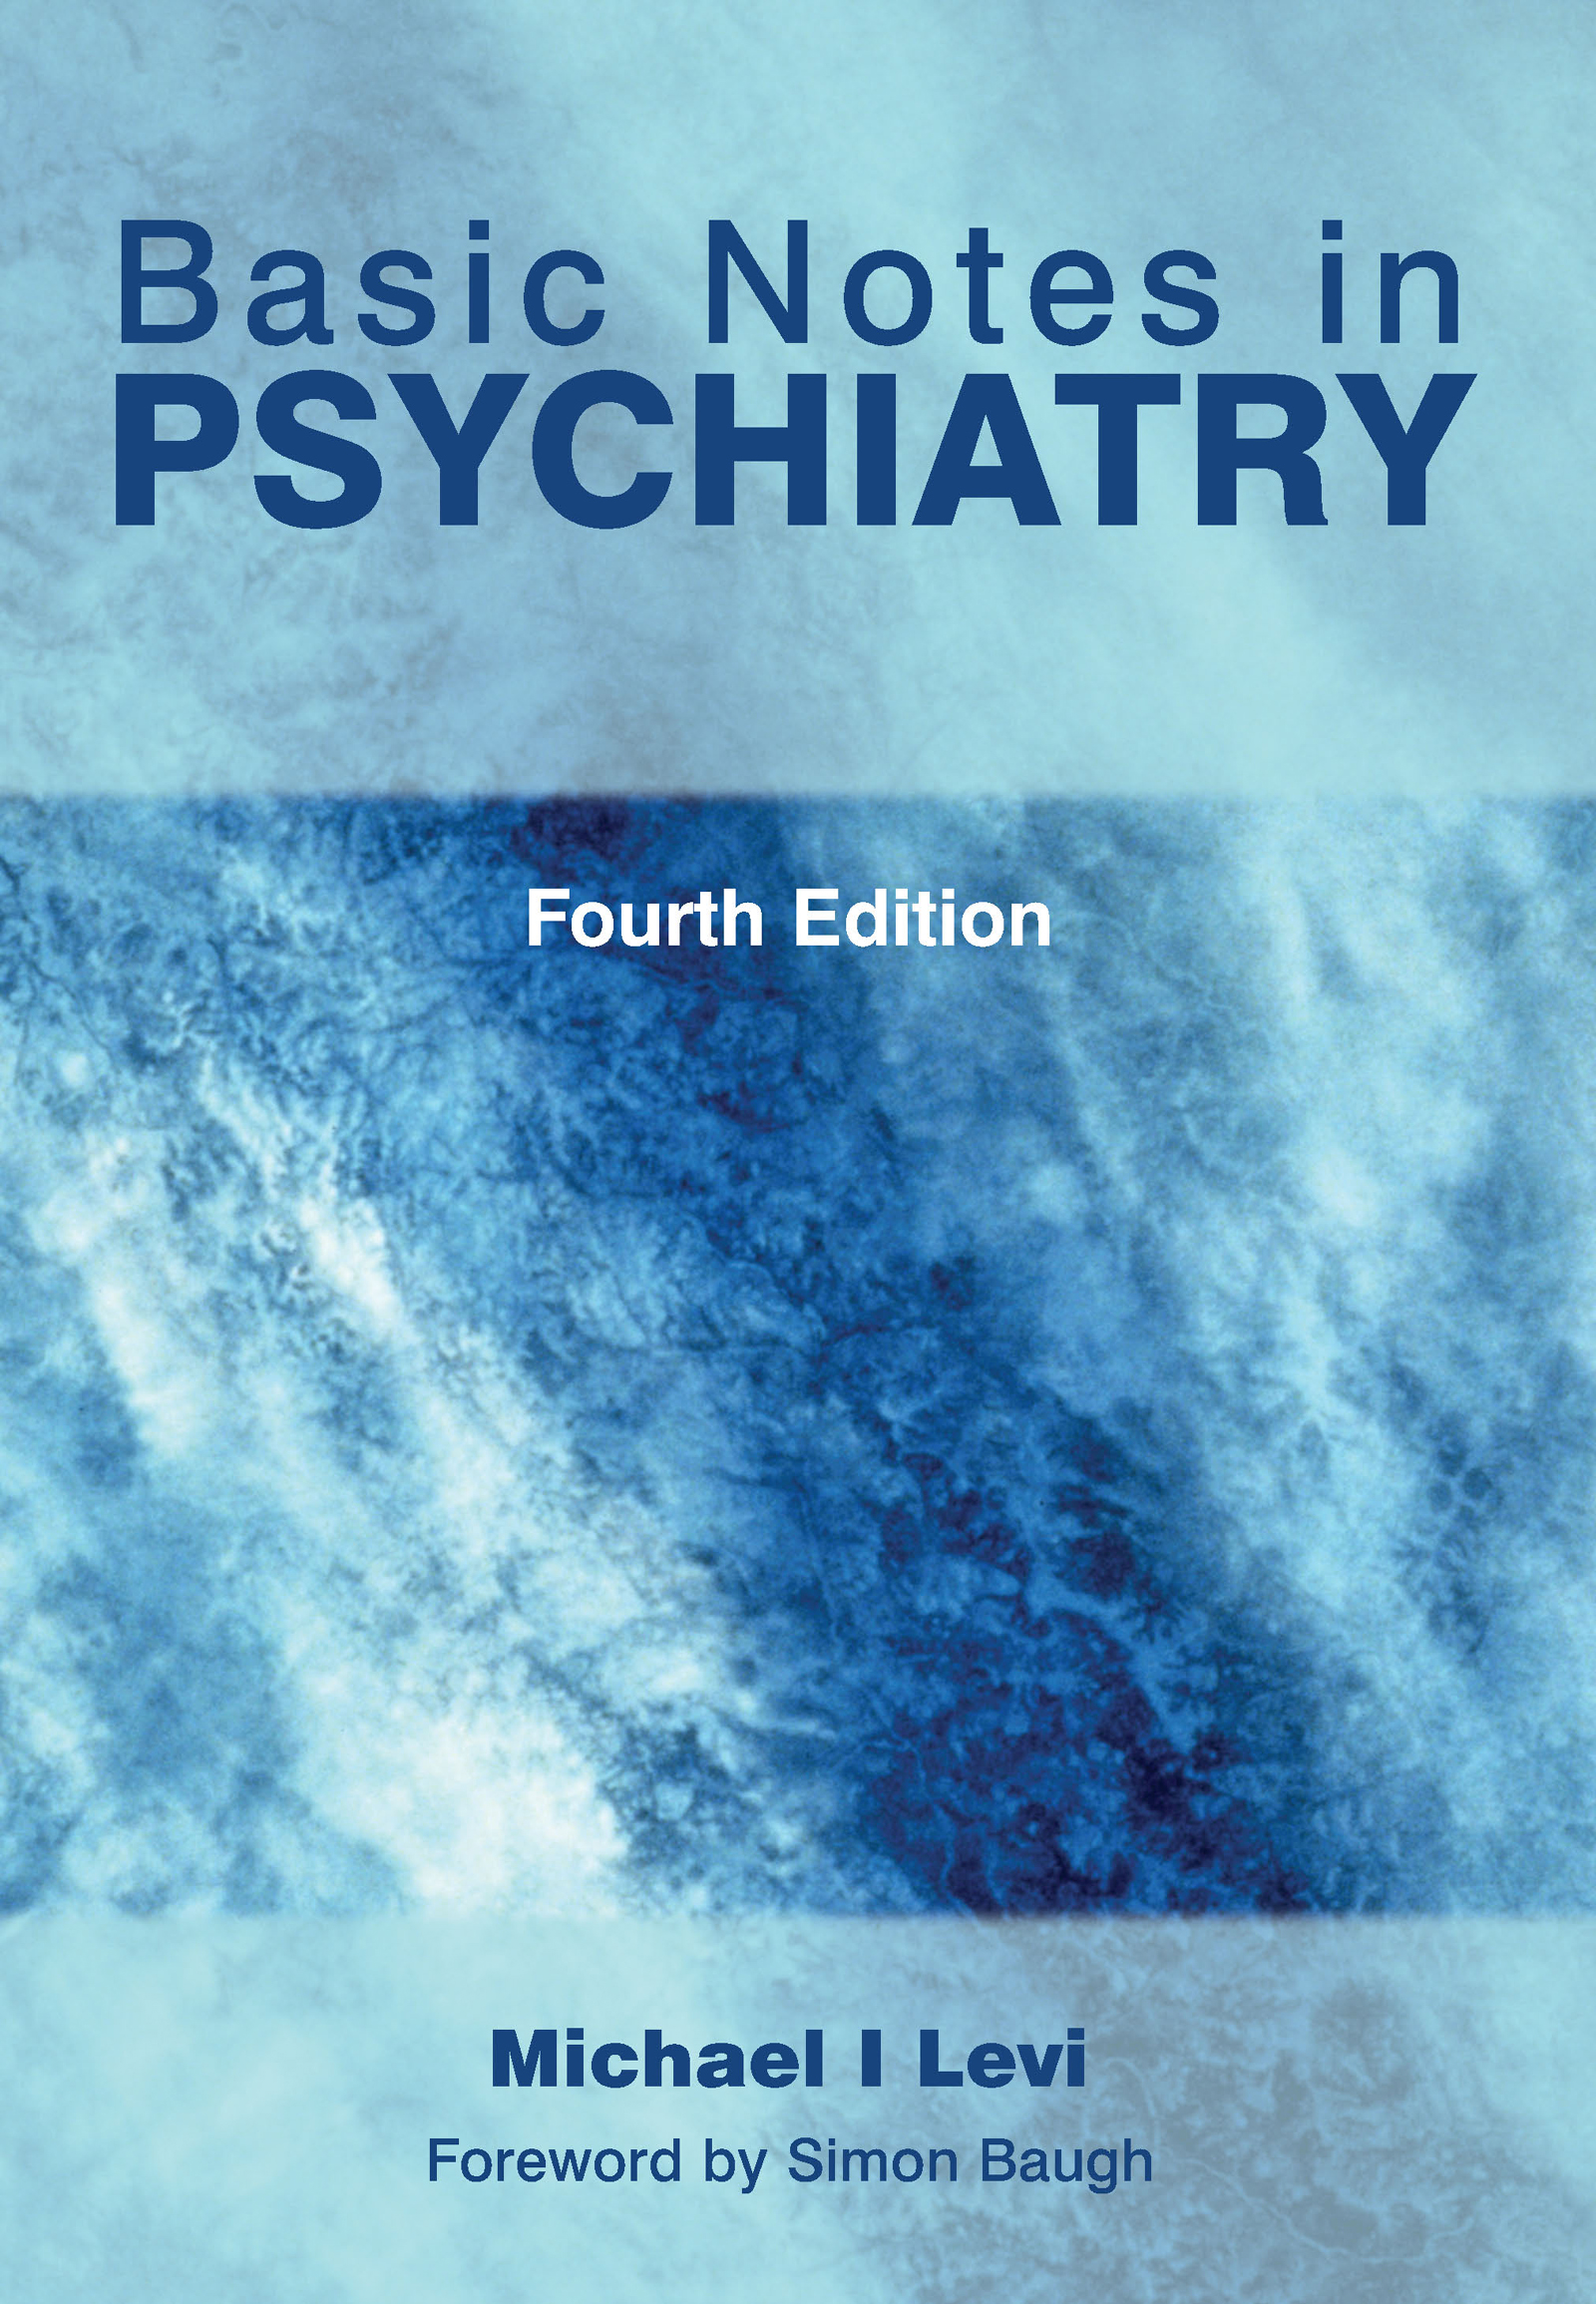 Basic Notes in Psychiatry: 1st Edition (Paperback) book cover